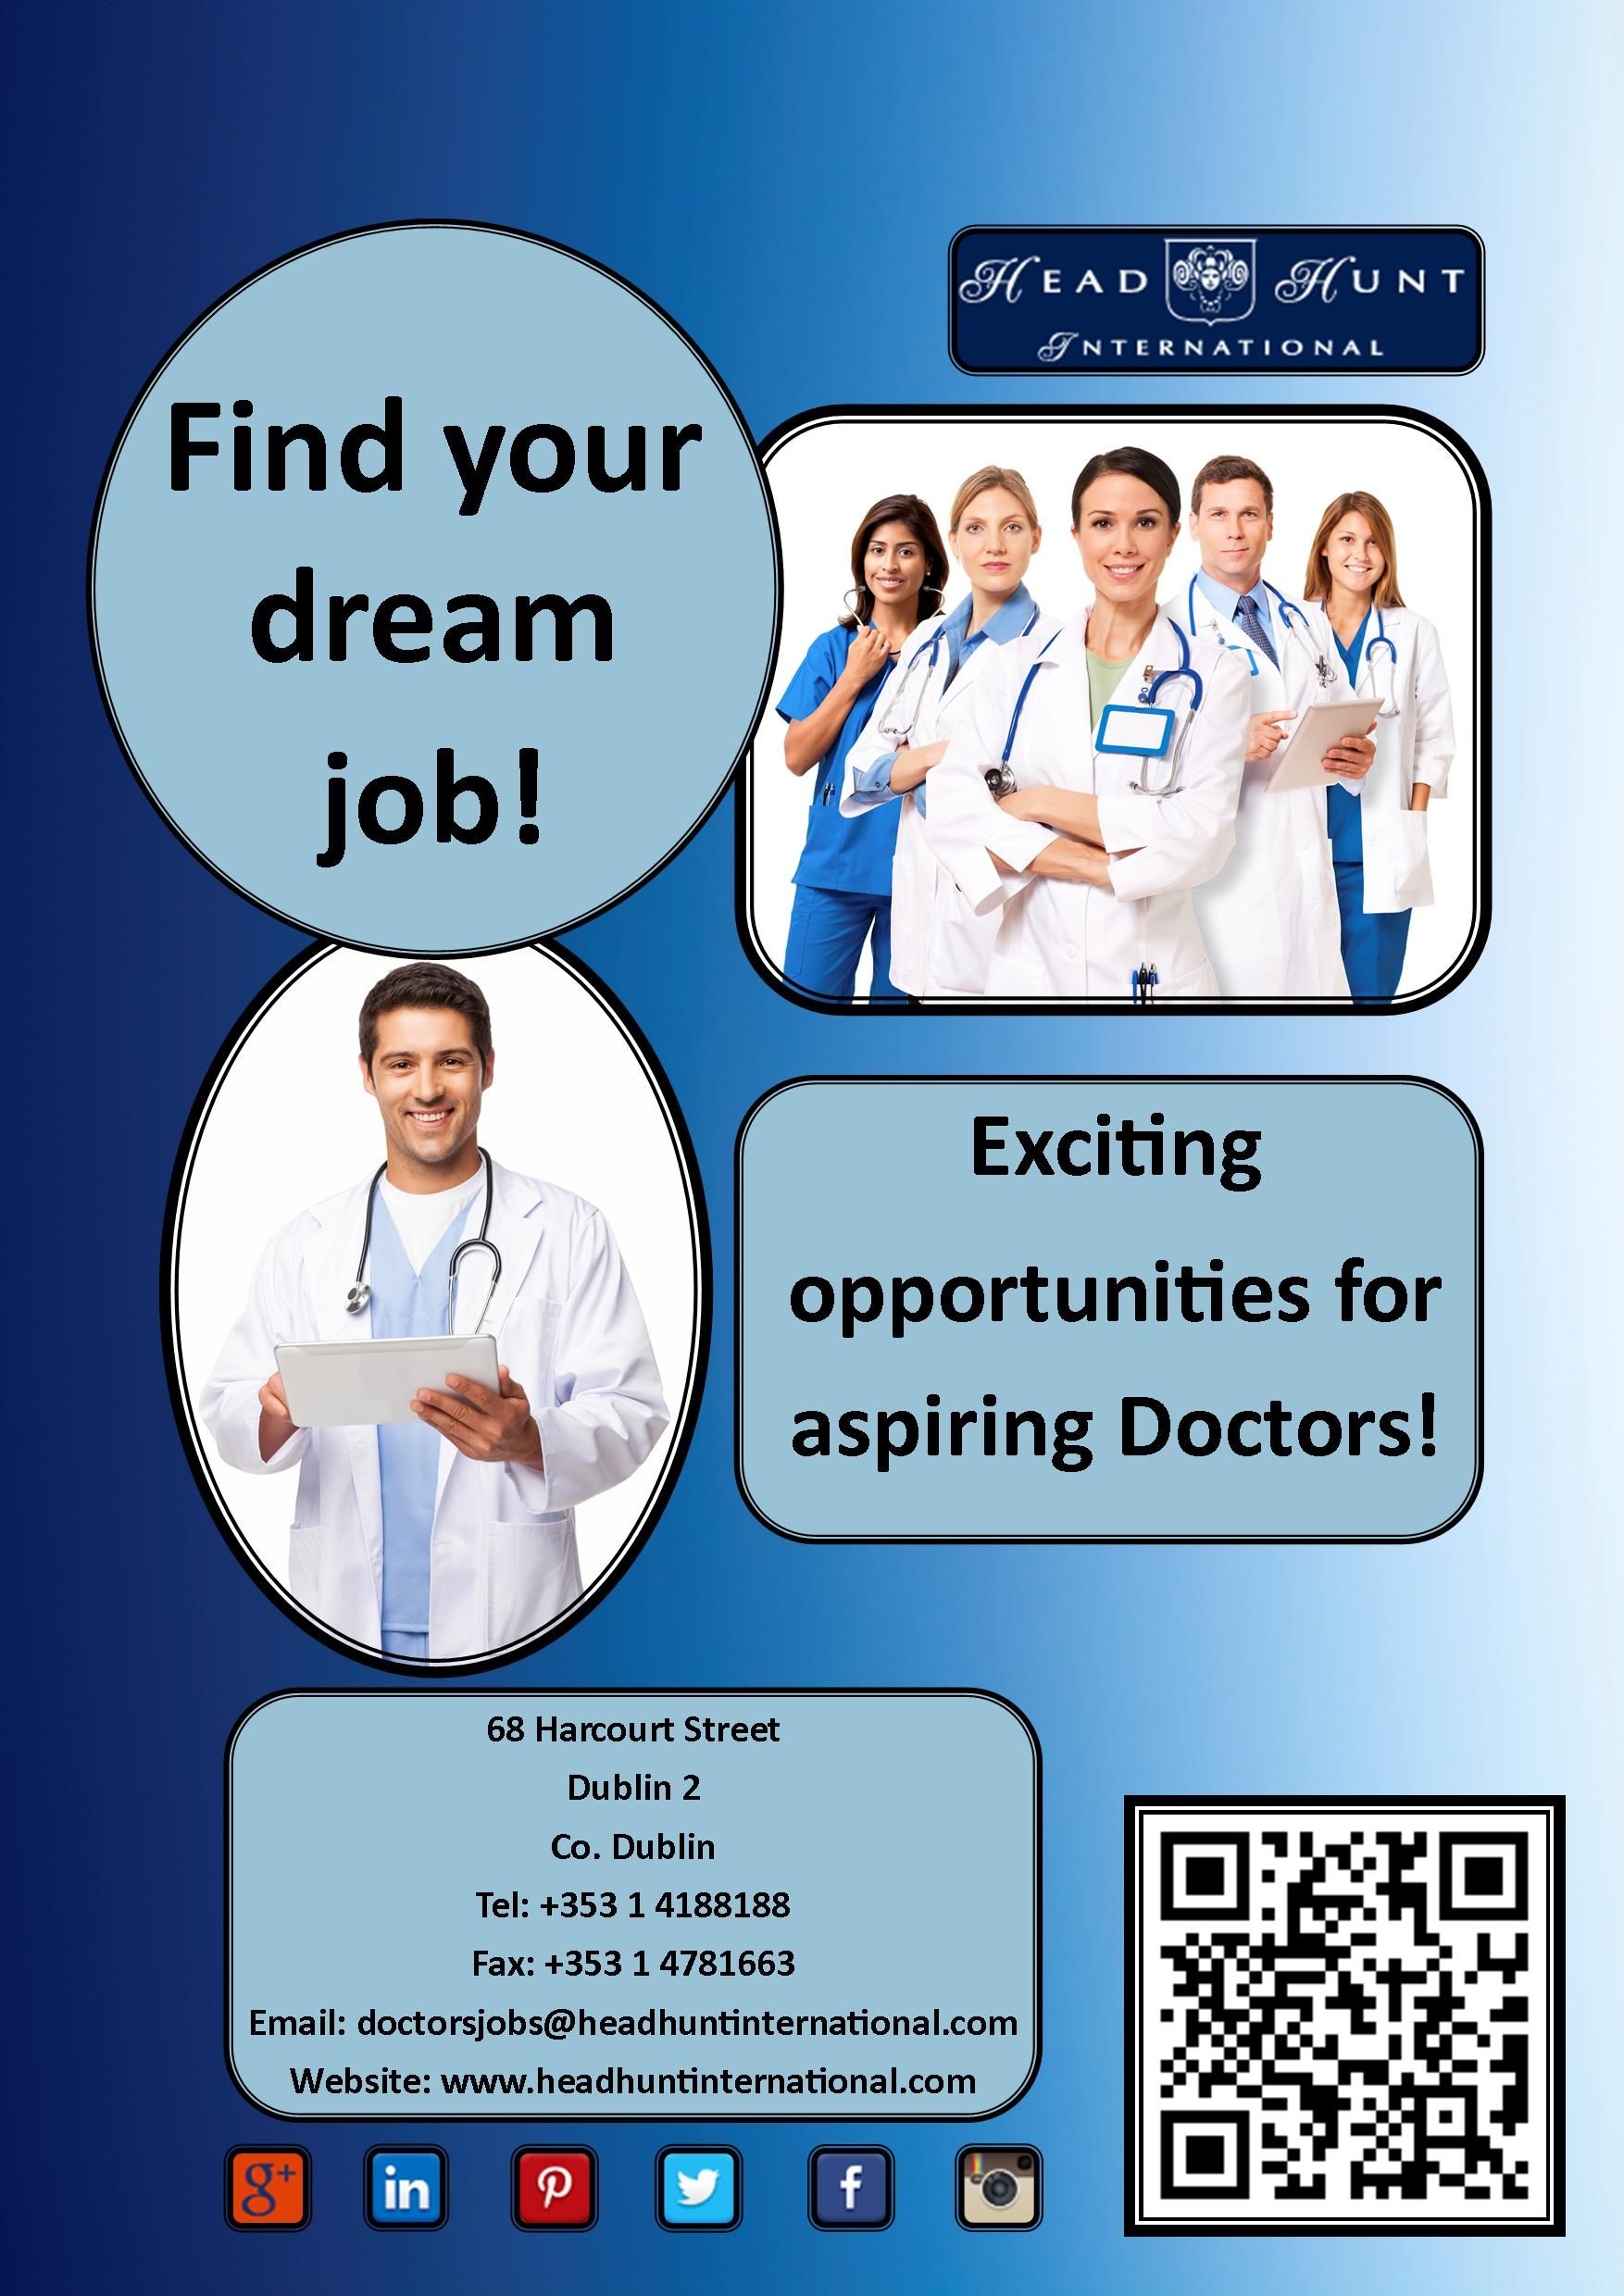 Job Hiring Doctor Nursing Medical Healthcare Opportunity